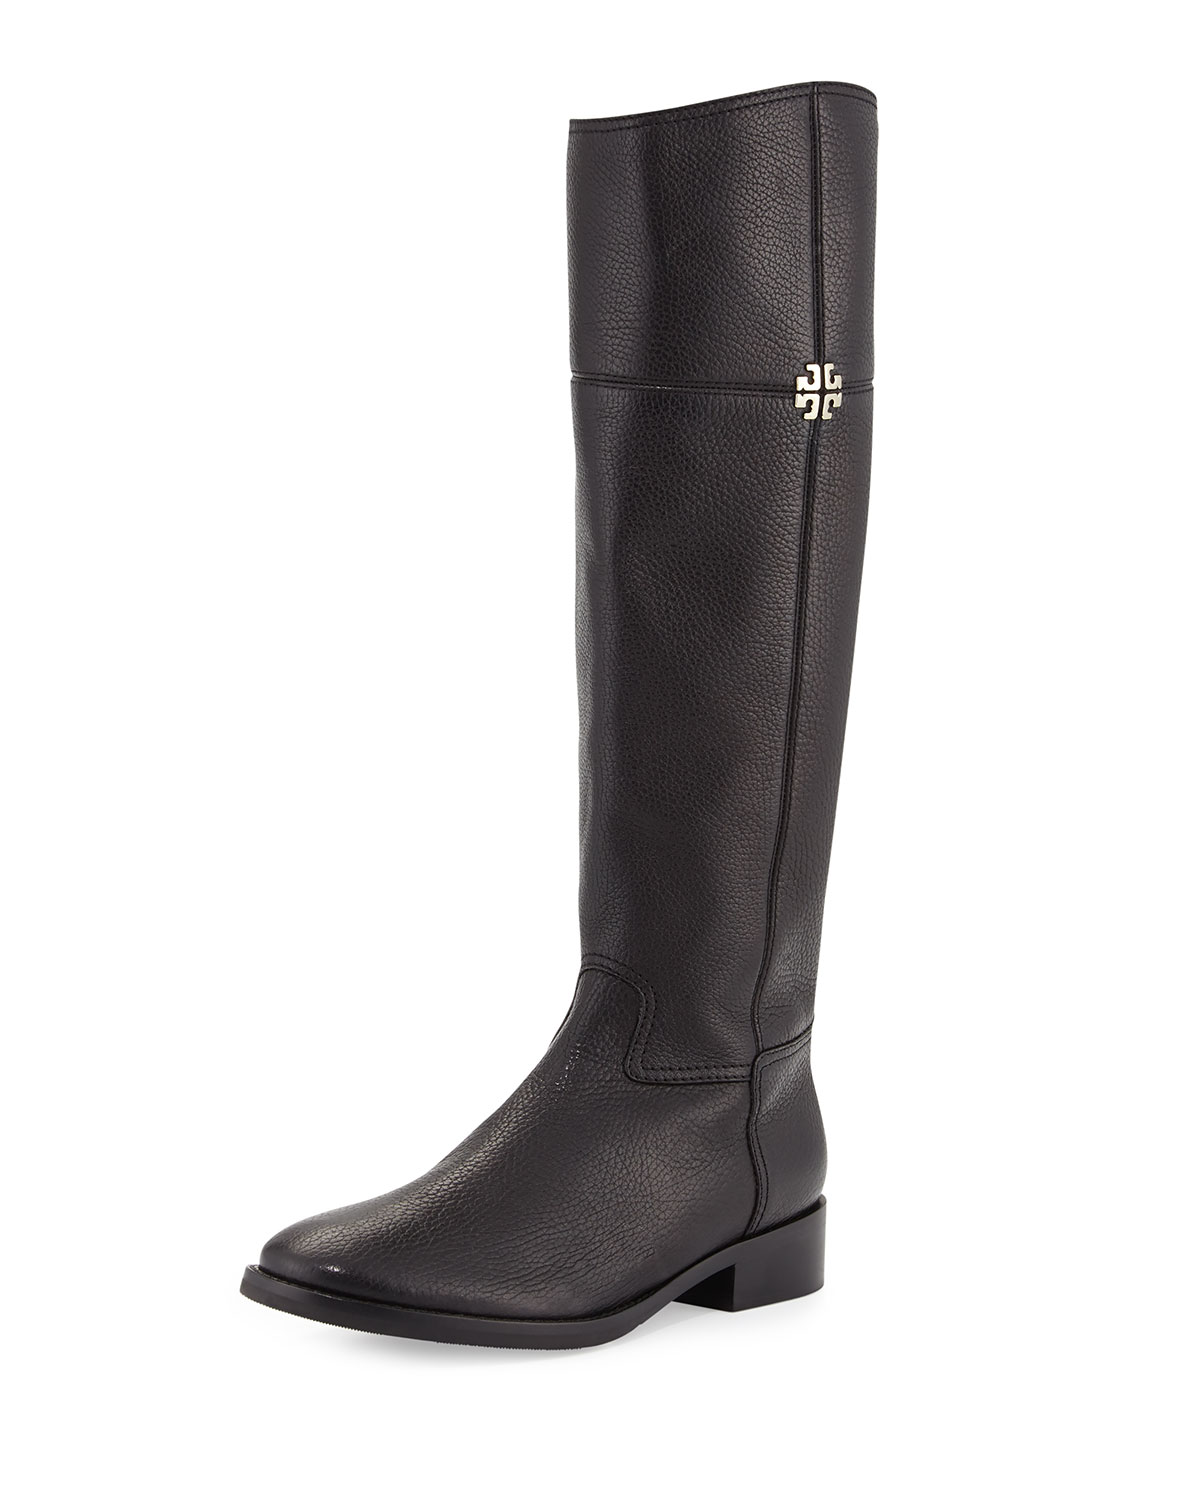 8fb4414912a9 Tory Burch Jolie Leather Riding Boot, Black | Neiman Marcus